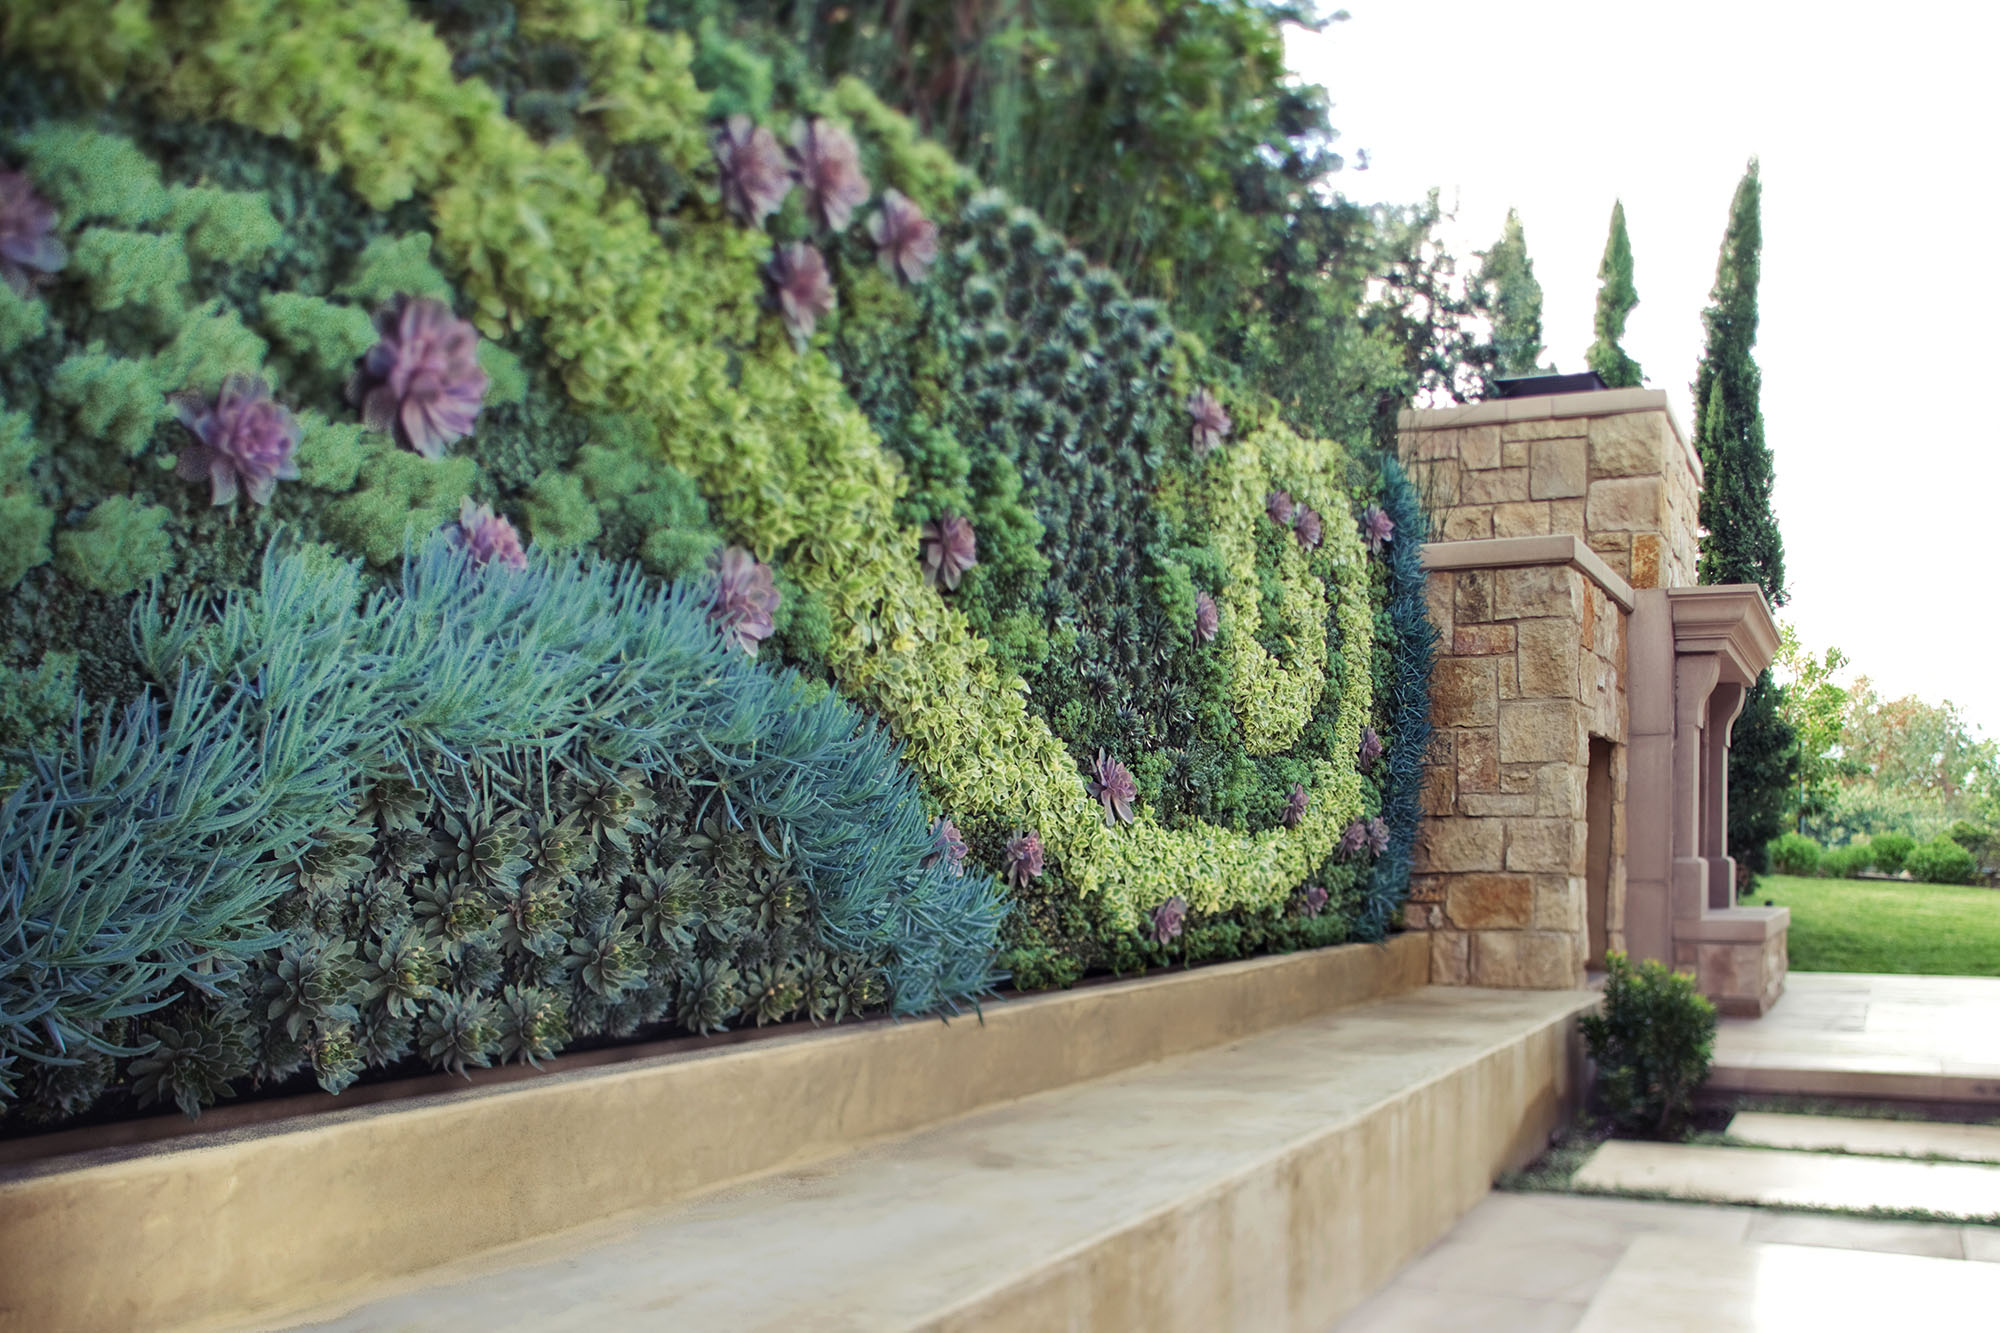 Plant wall in an outdoor garden surrounding a stone wall.